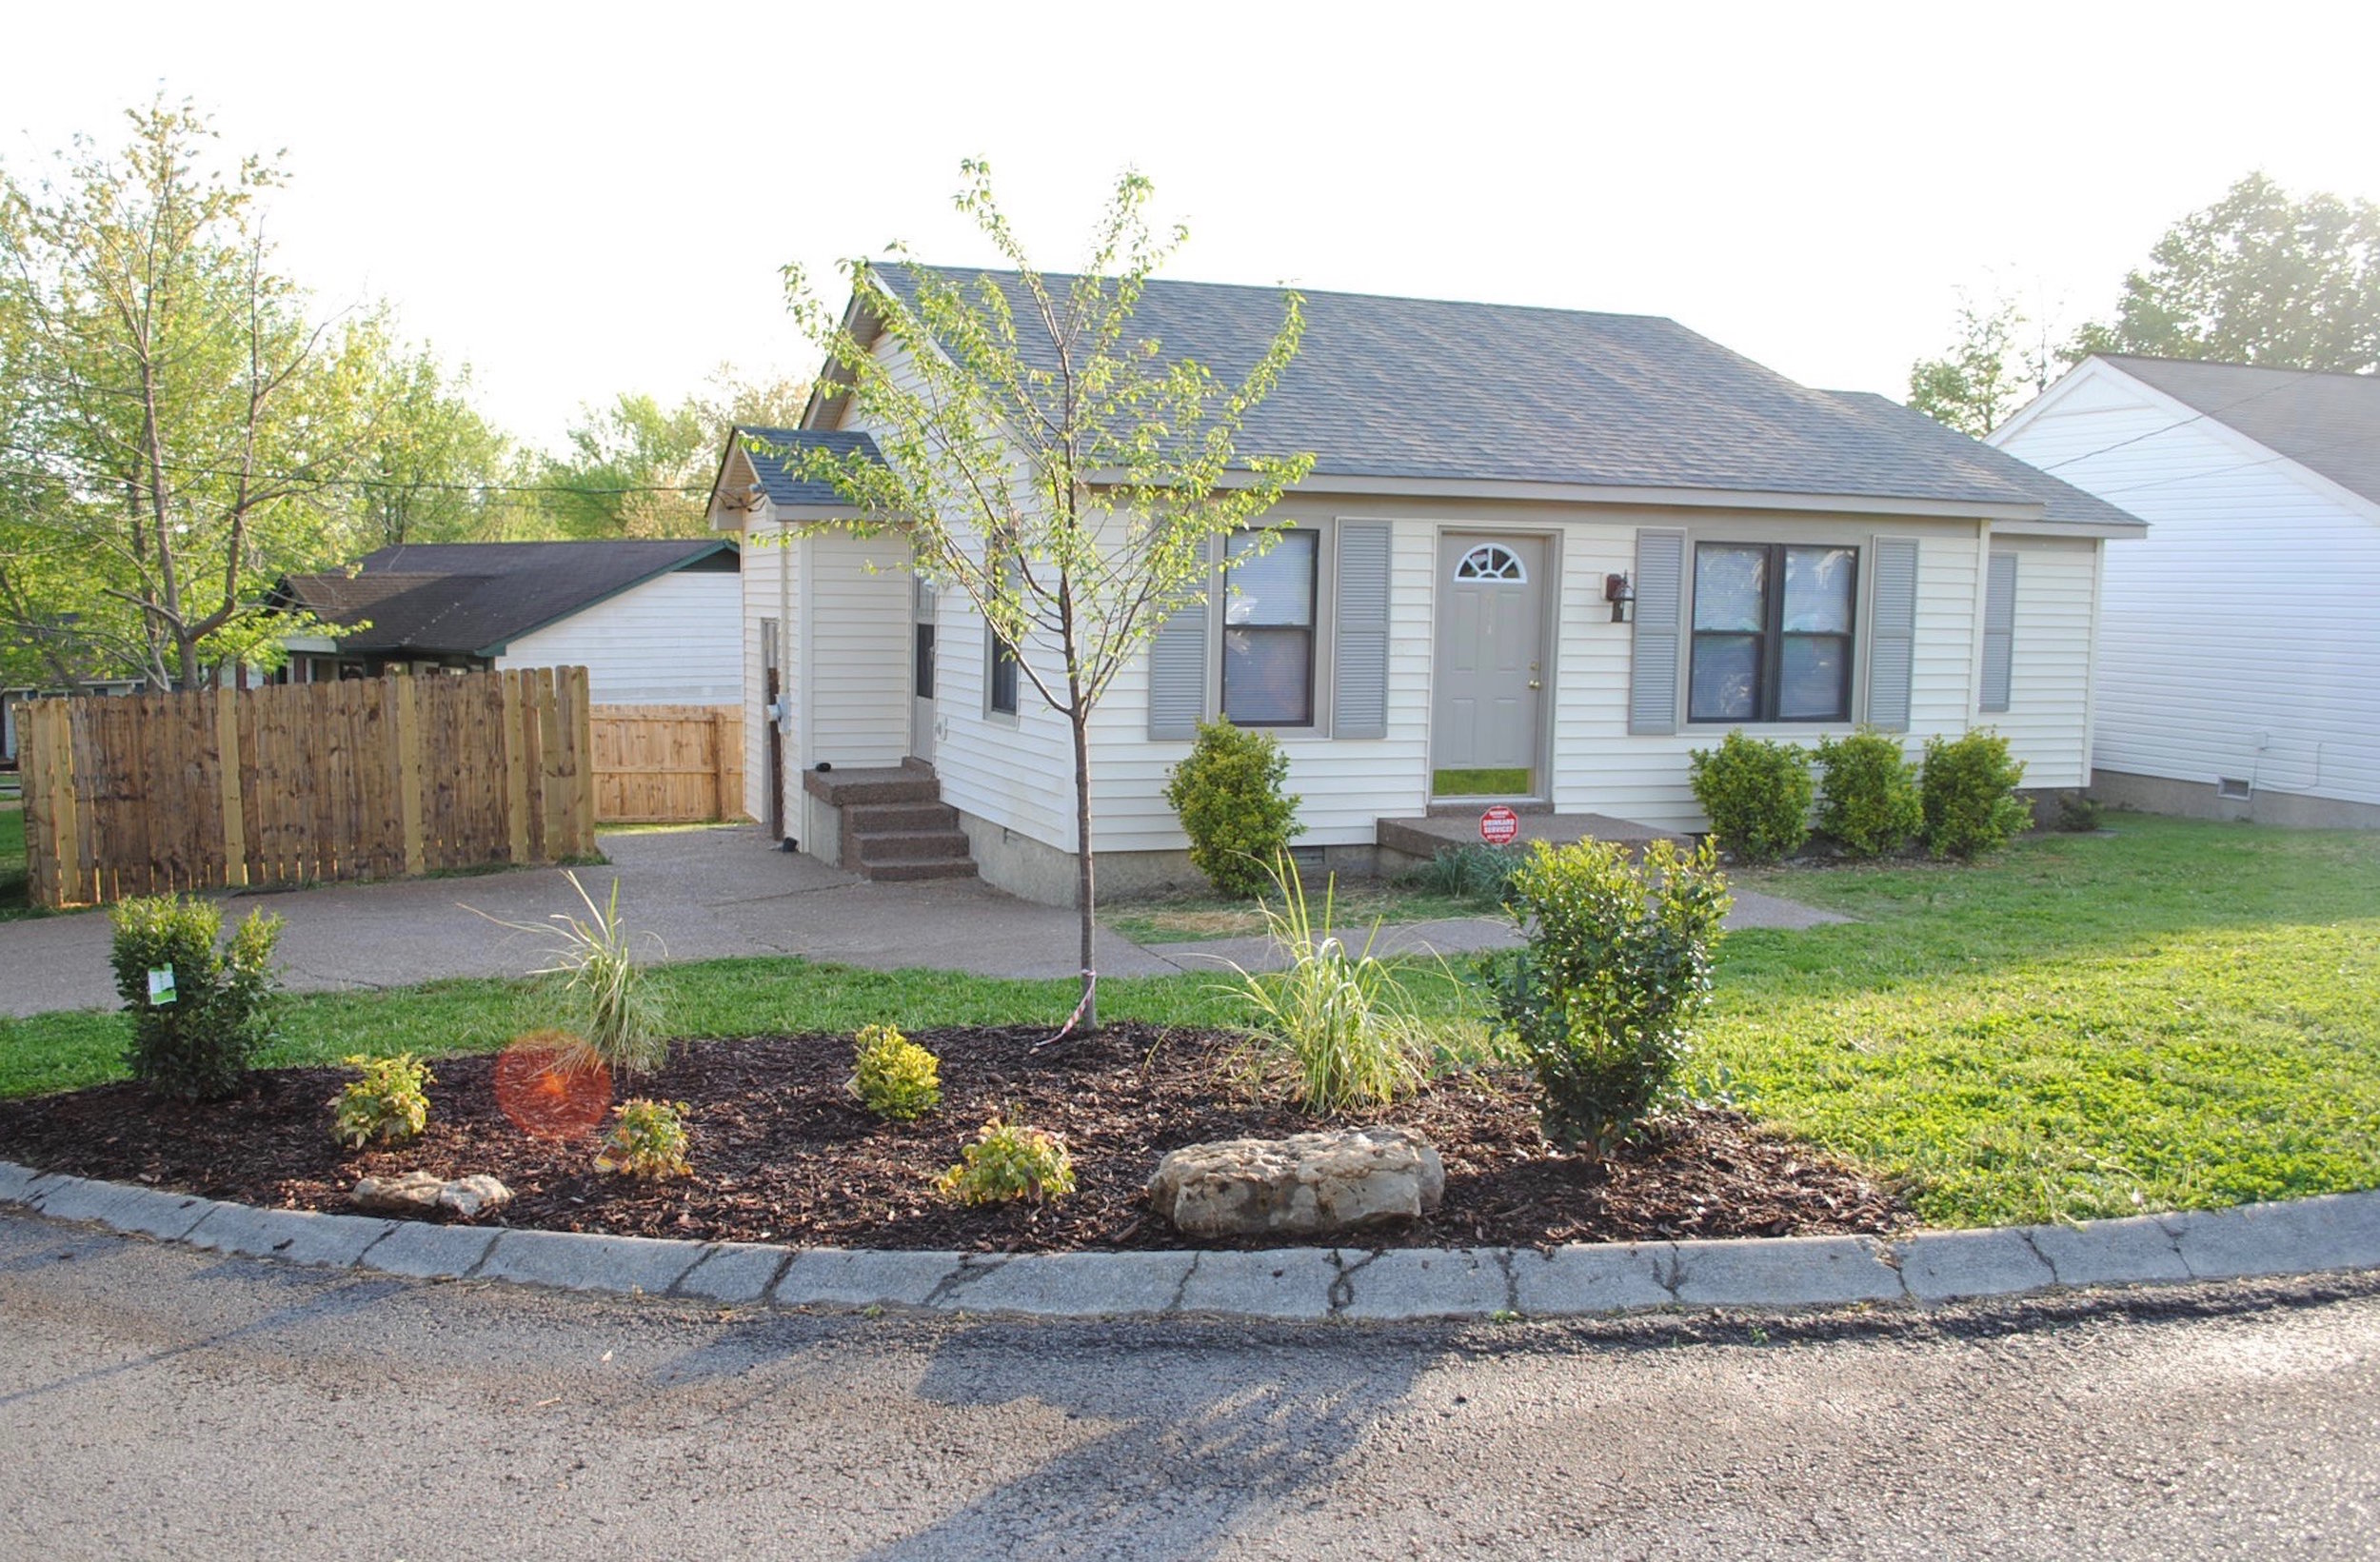 411 RENTED MADISON: 411 Heritage Ln: Home: 3 Br, 1.5 Ba